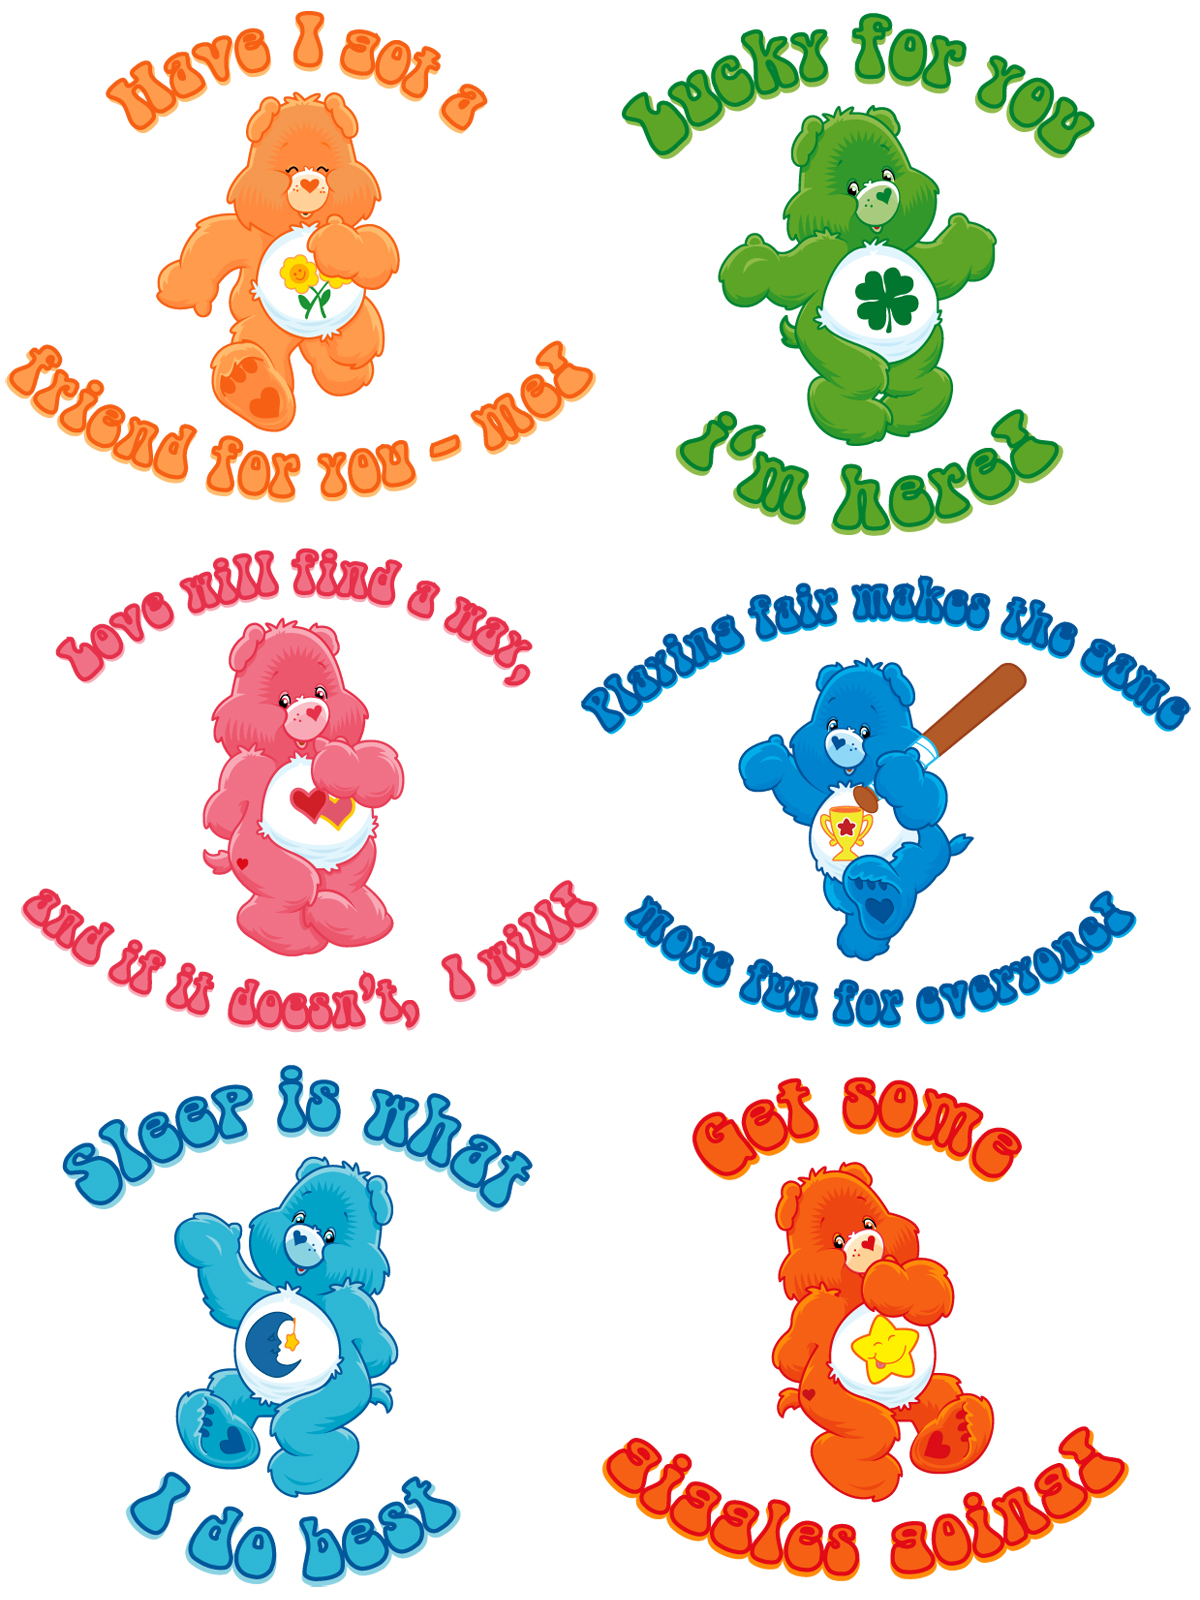 Carebears 2 by estesgraphics